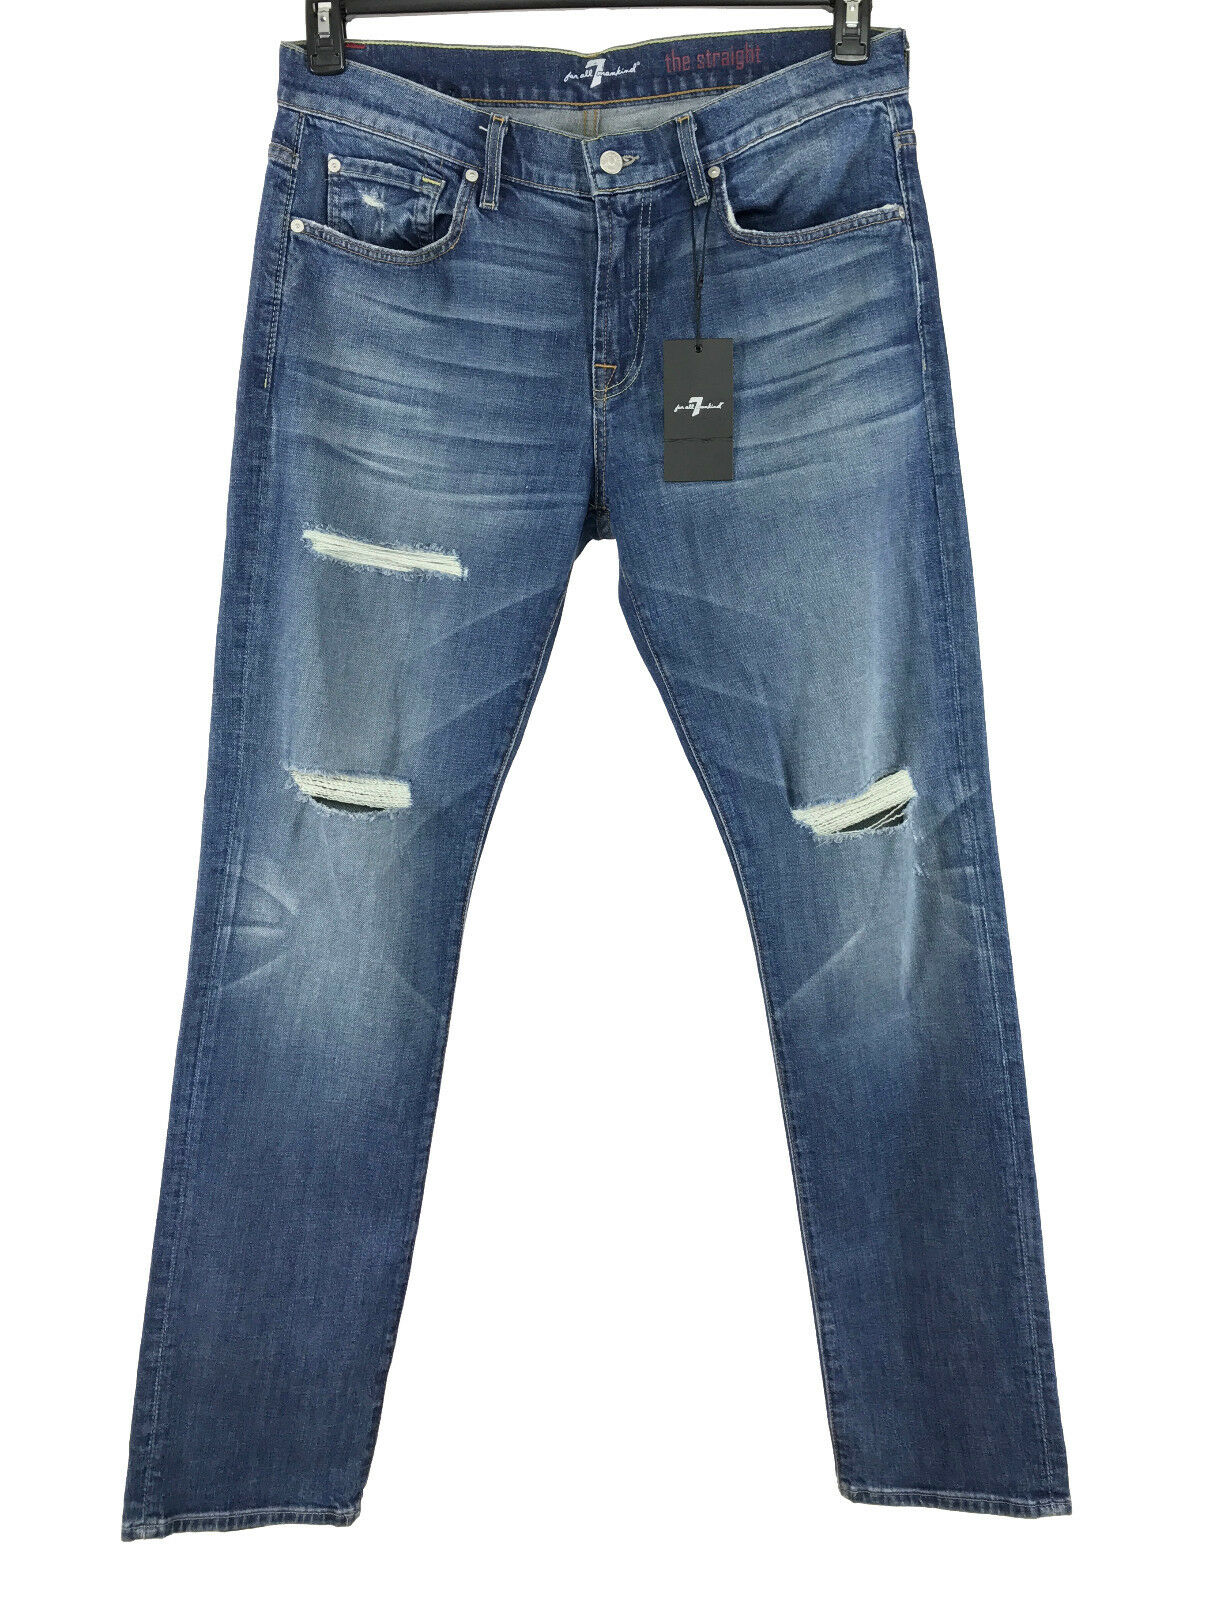 7 For All Mankind Herren Blau The Gerade Distressed Jeans 34x34